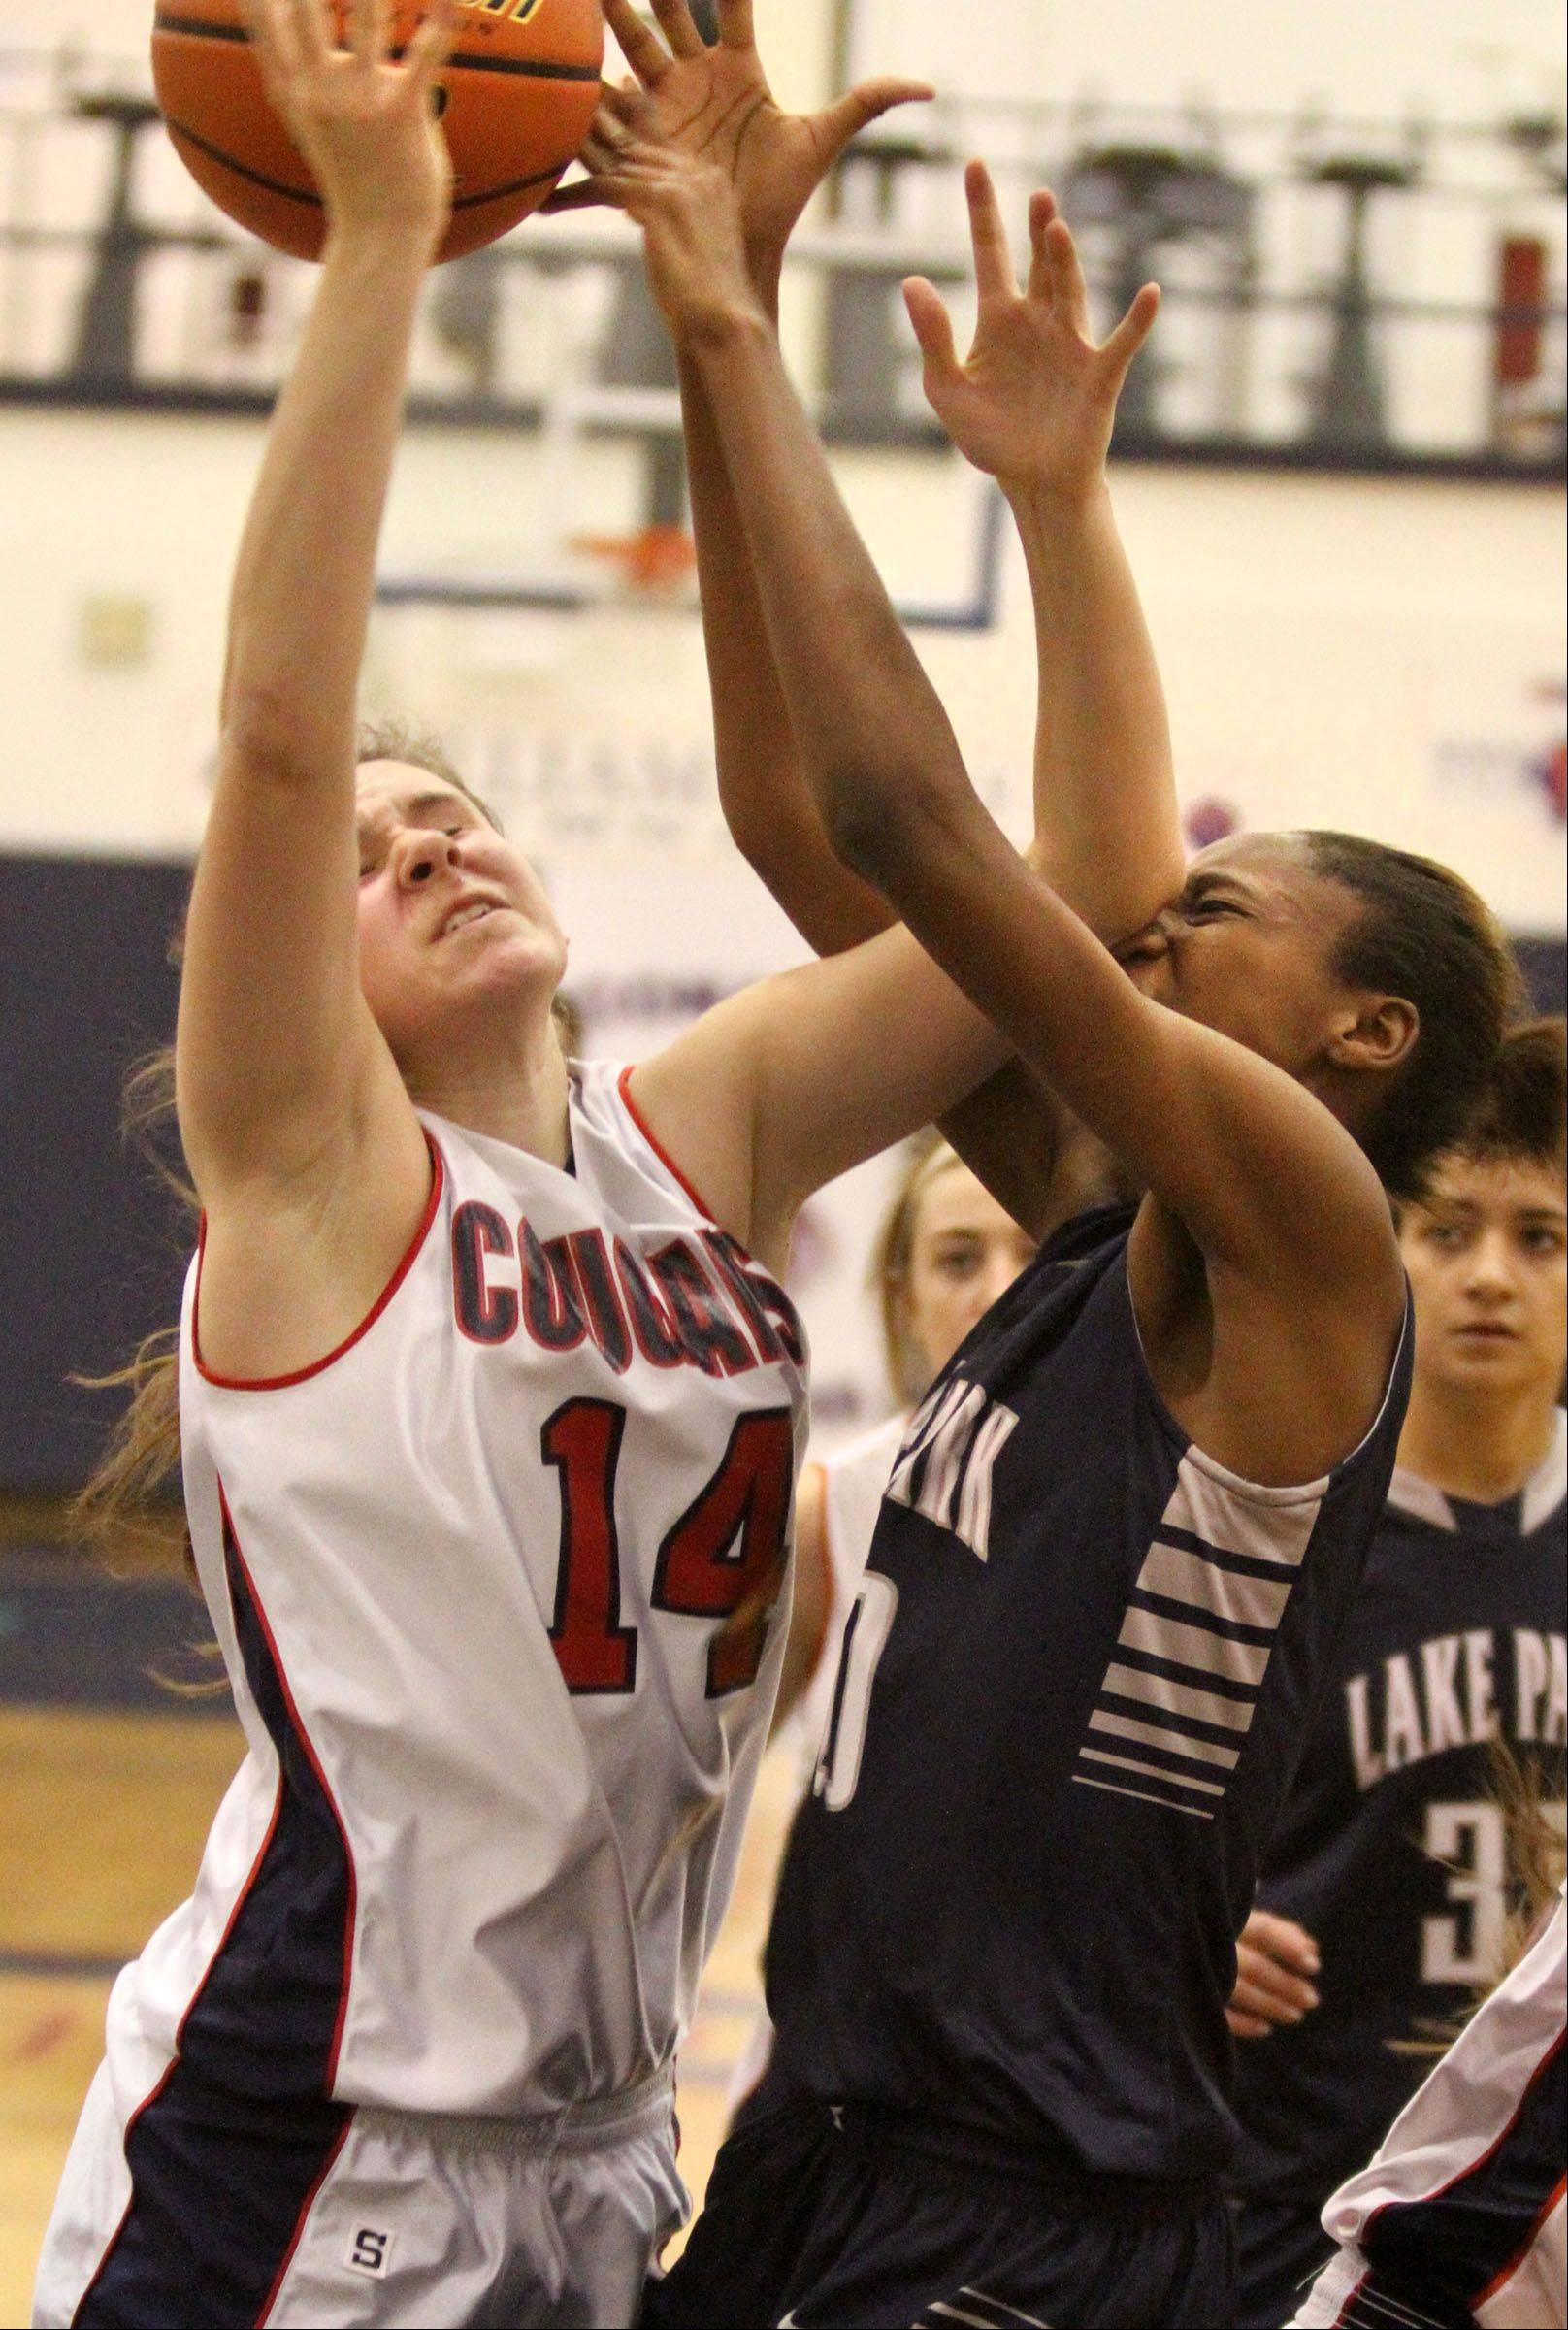 Conant's Sarah Mazurek, left, and Lake Park's Tyshai Freeman collide while leaping for a rebound in Hoffman Estates on Saturday.